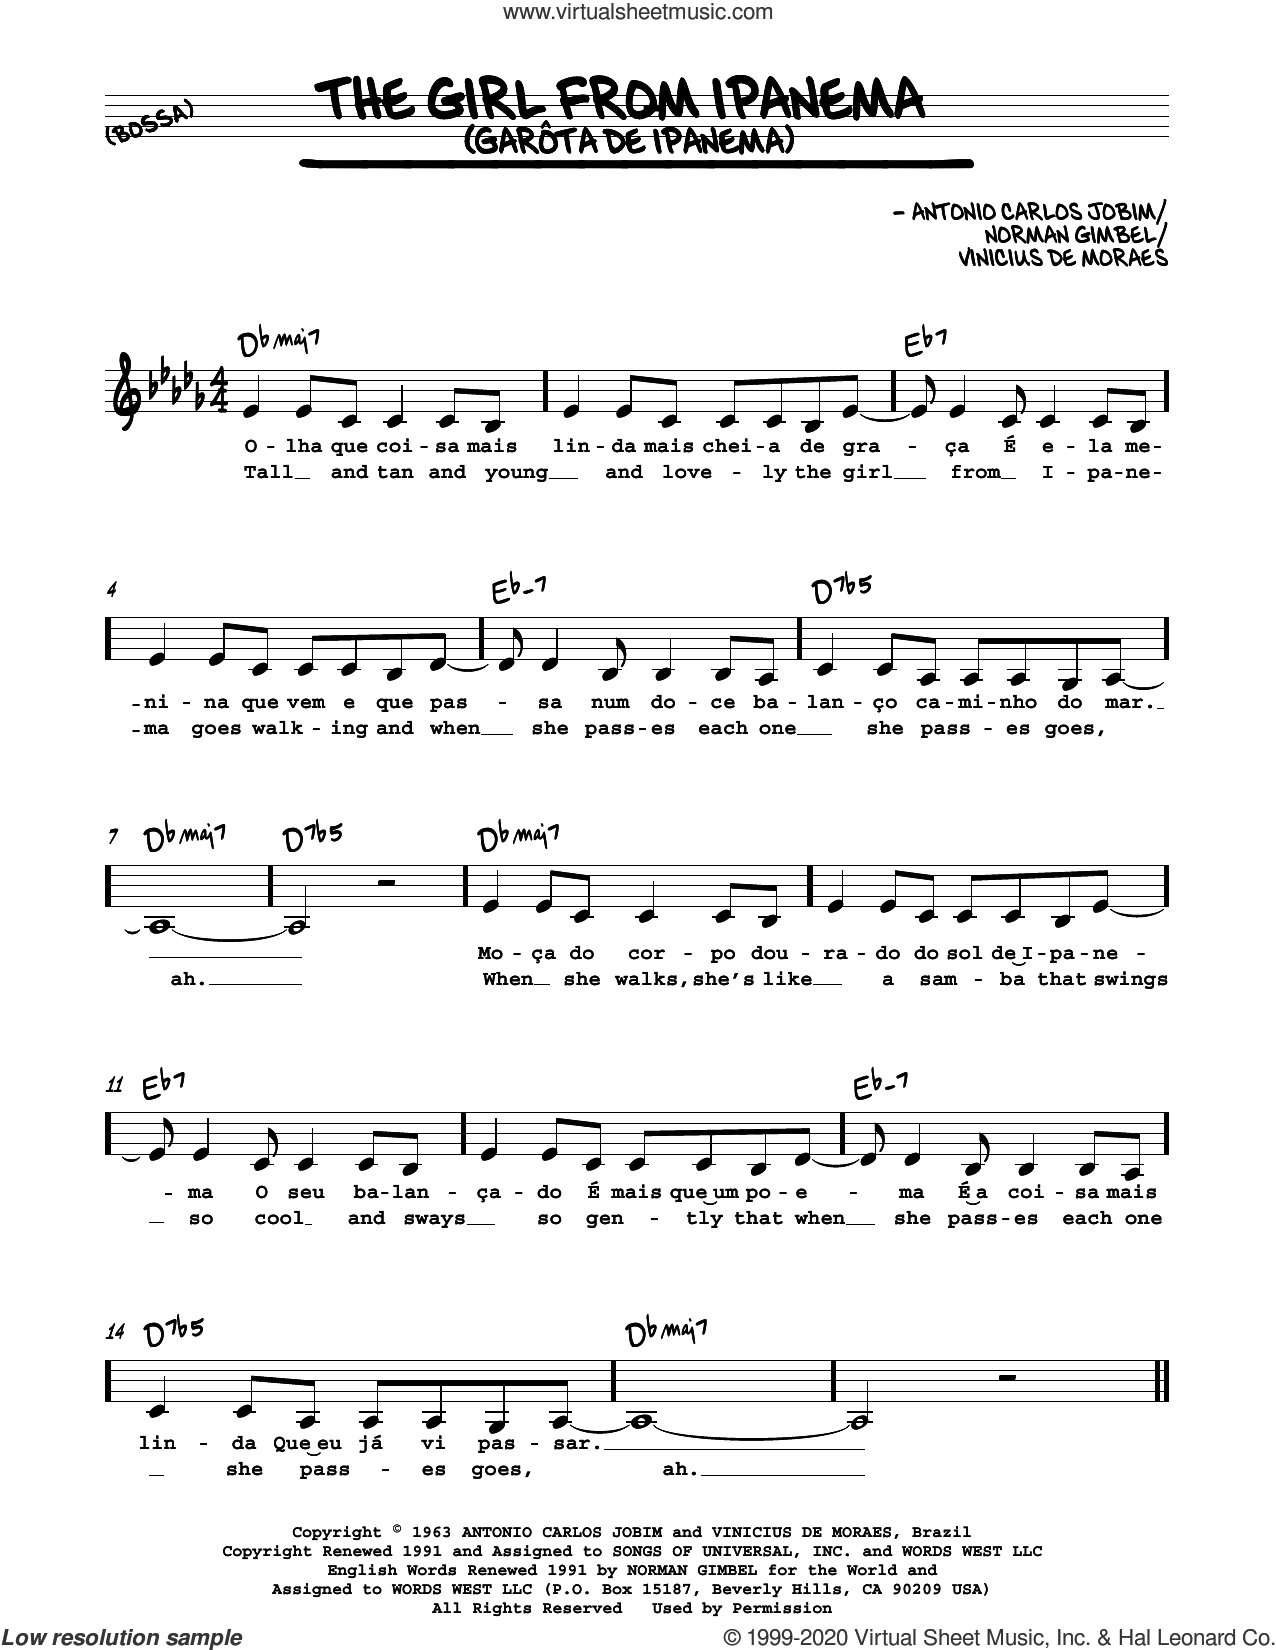 The Girl From Ipanema (Garota De Ipanema) sheet music for voice and other instruments (in C) by Norman Gimbel, Antonio Carlos Jobim and Vinicius de Moraes, intermediate skill level